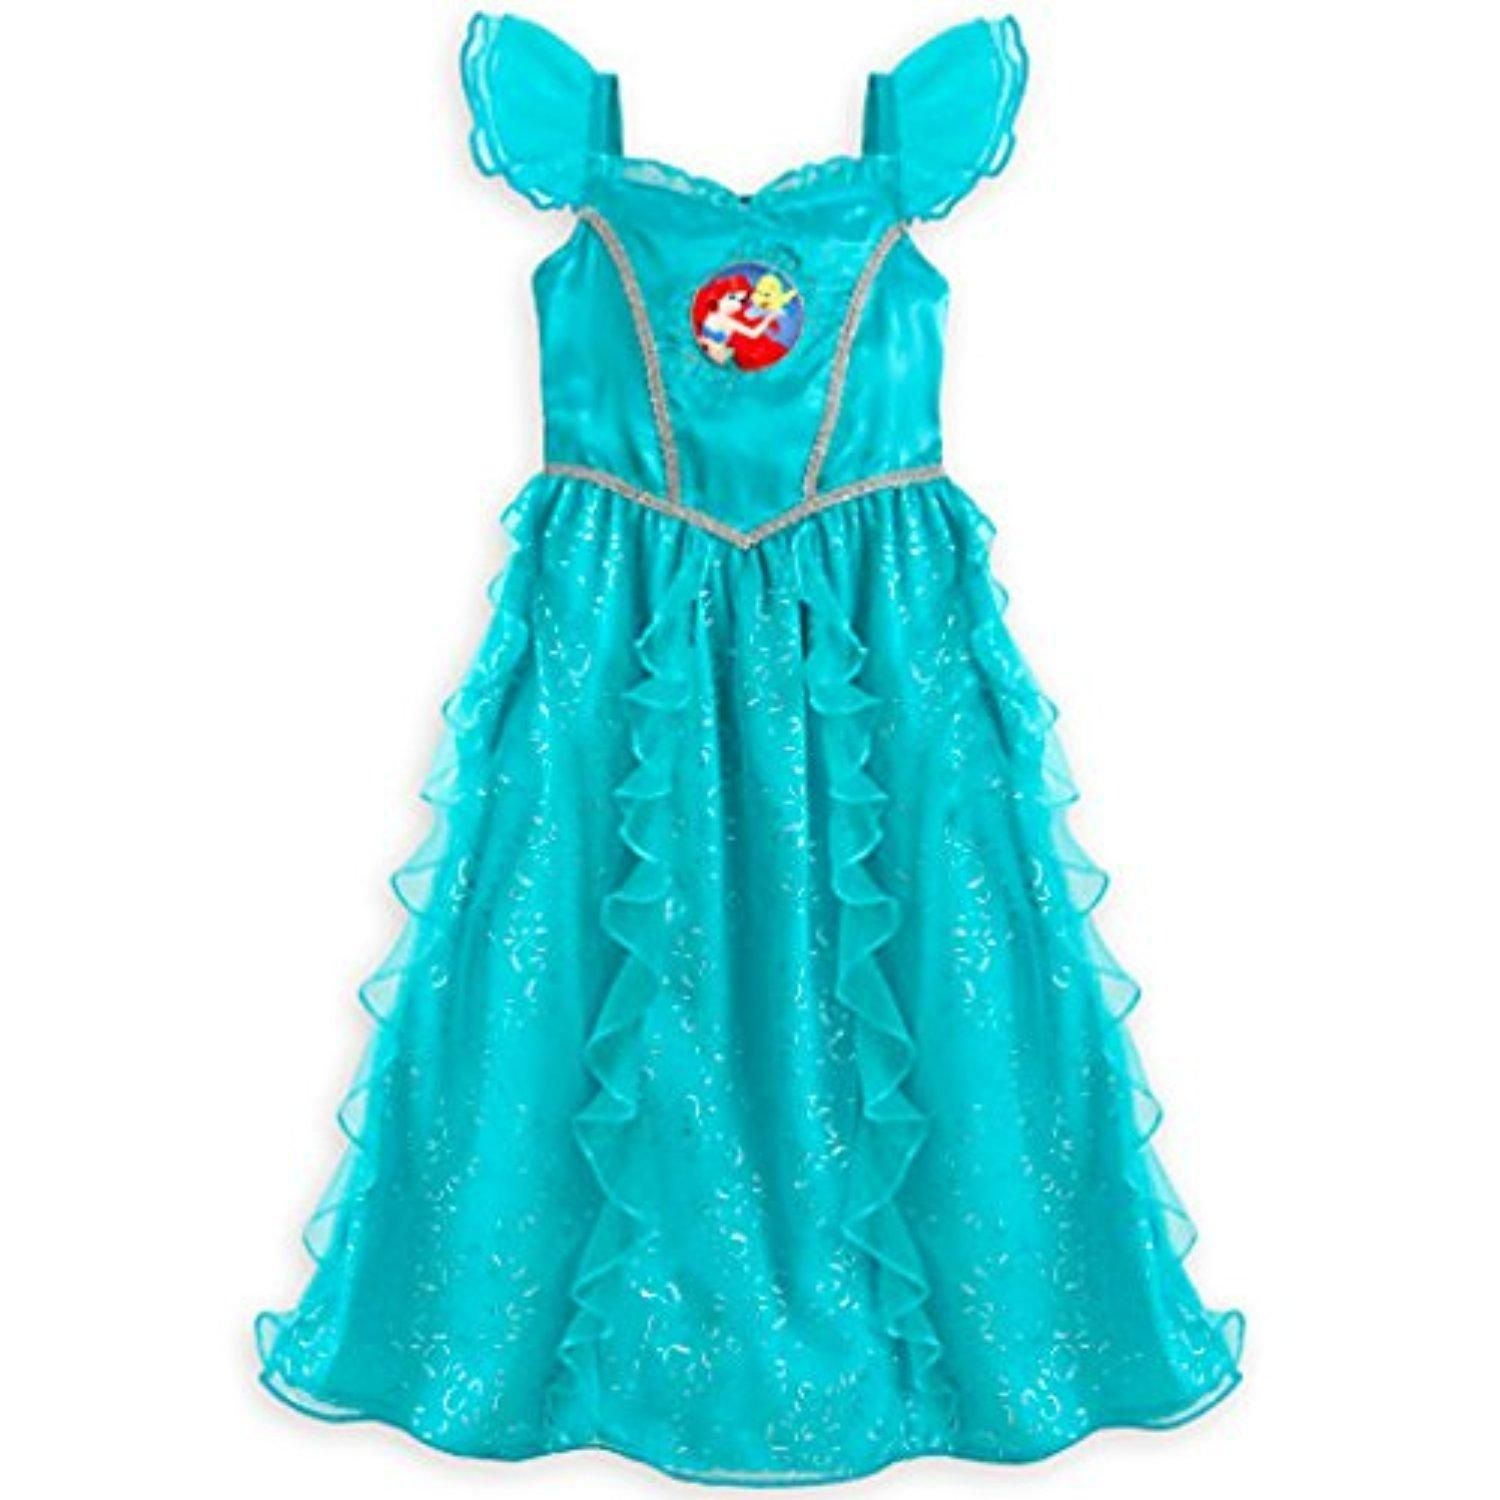 d4f15eb103 Disney Store Girl s Ariel Nightgown Ariel Sleepwear (5 6) - Brought to you  by Avarsha.com